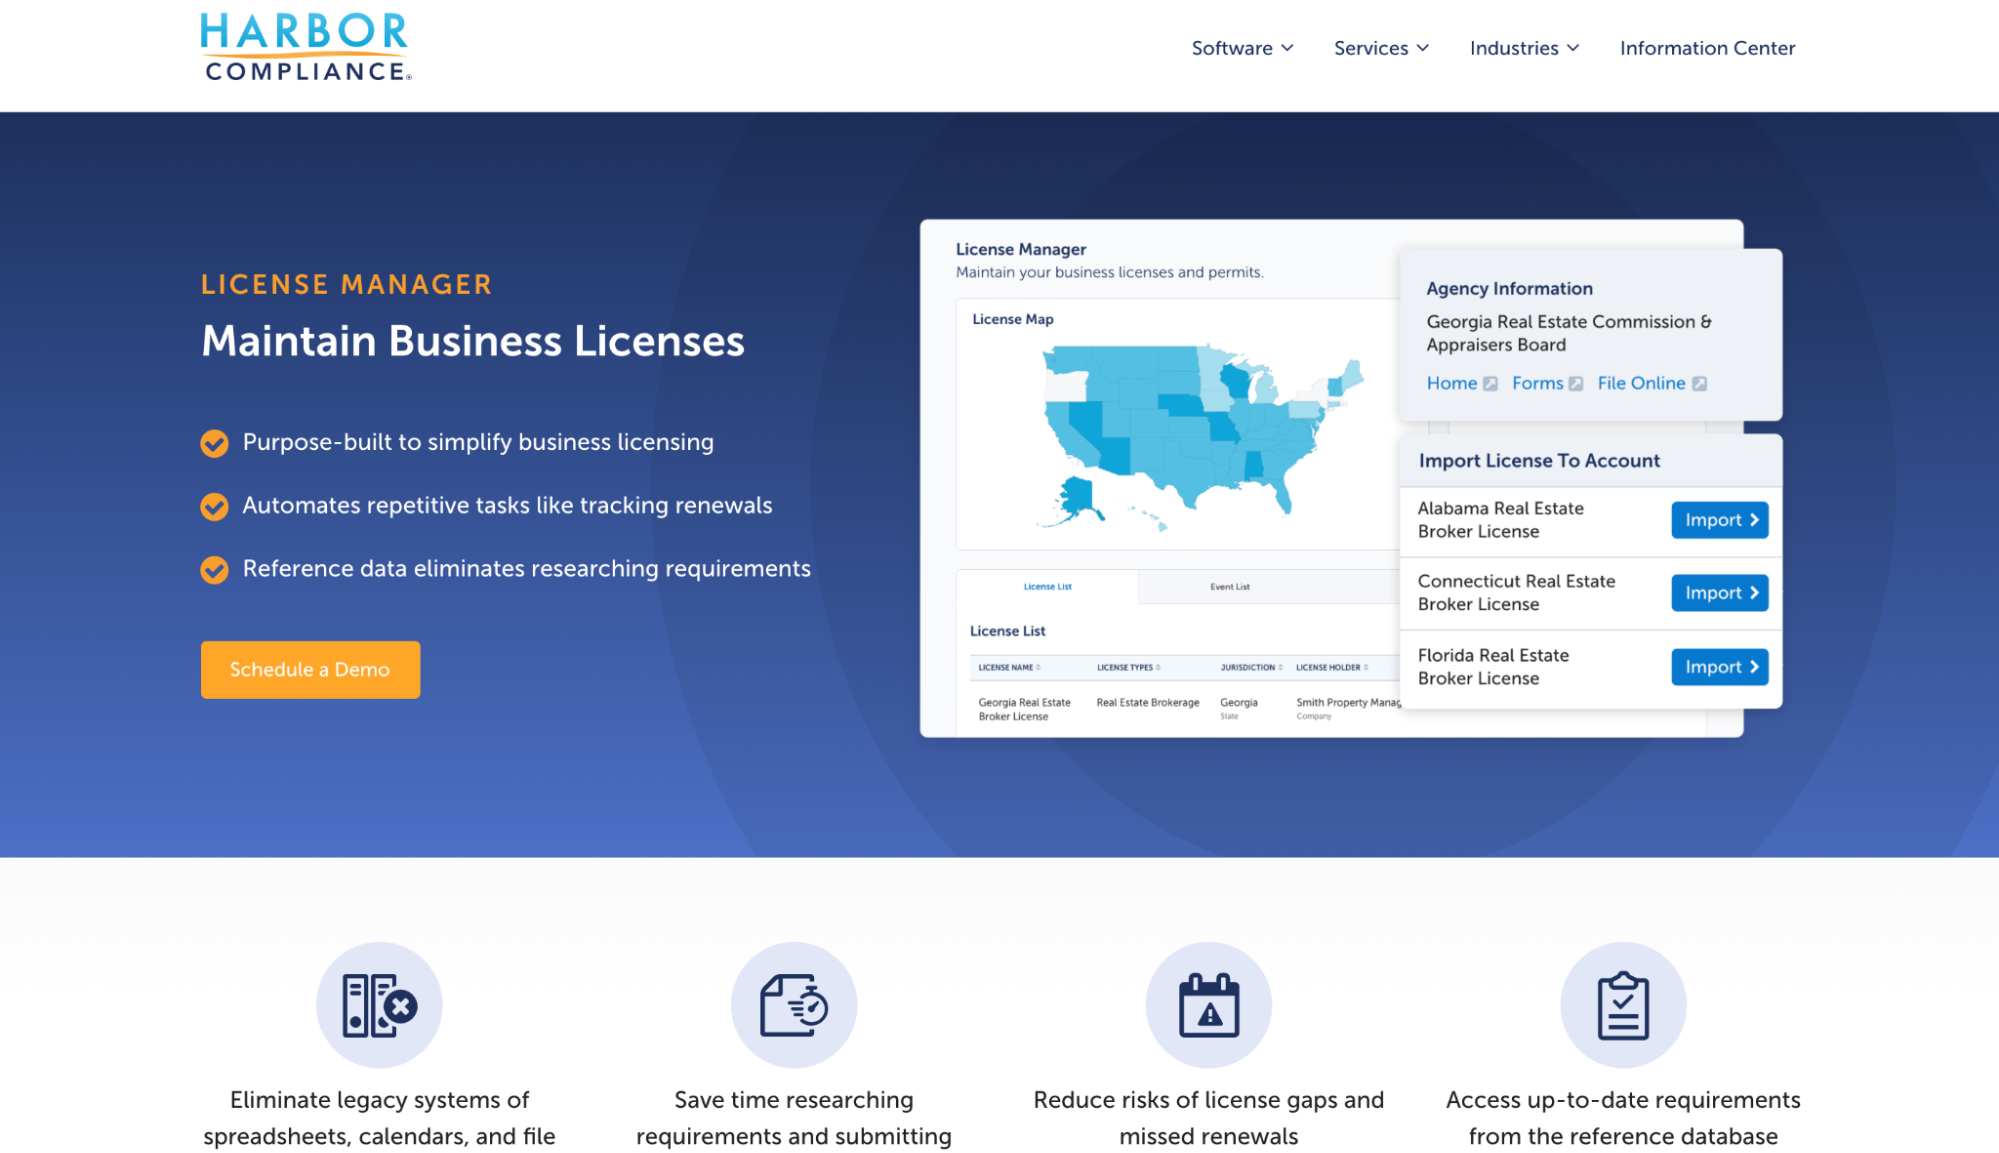 5 Easy Steps to Register for a Business License